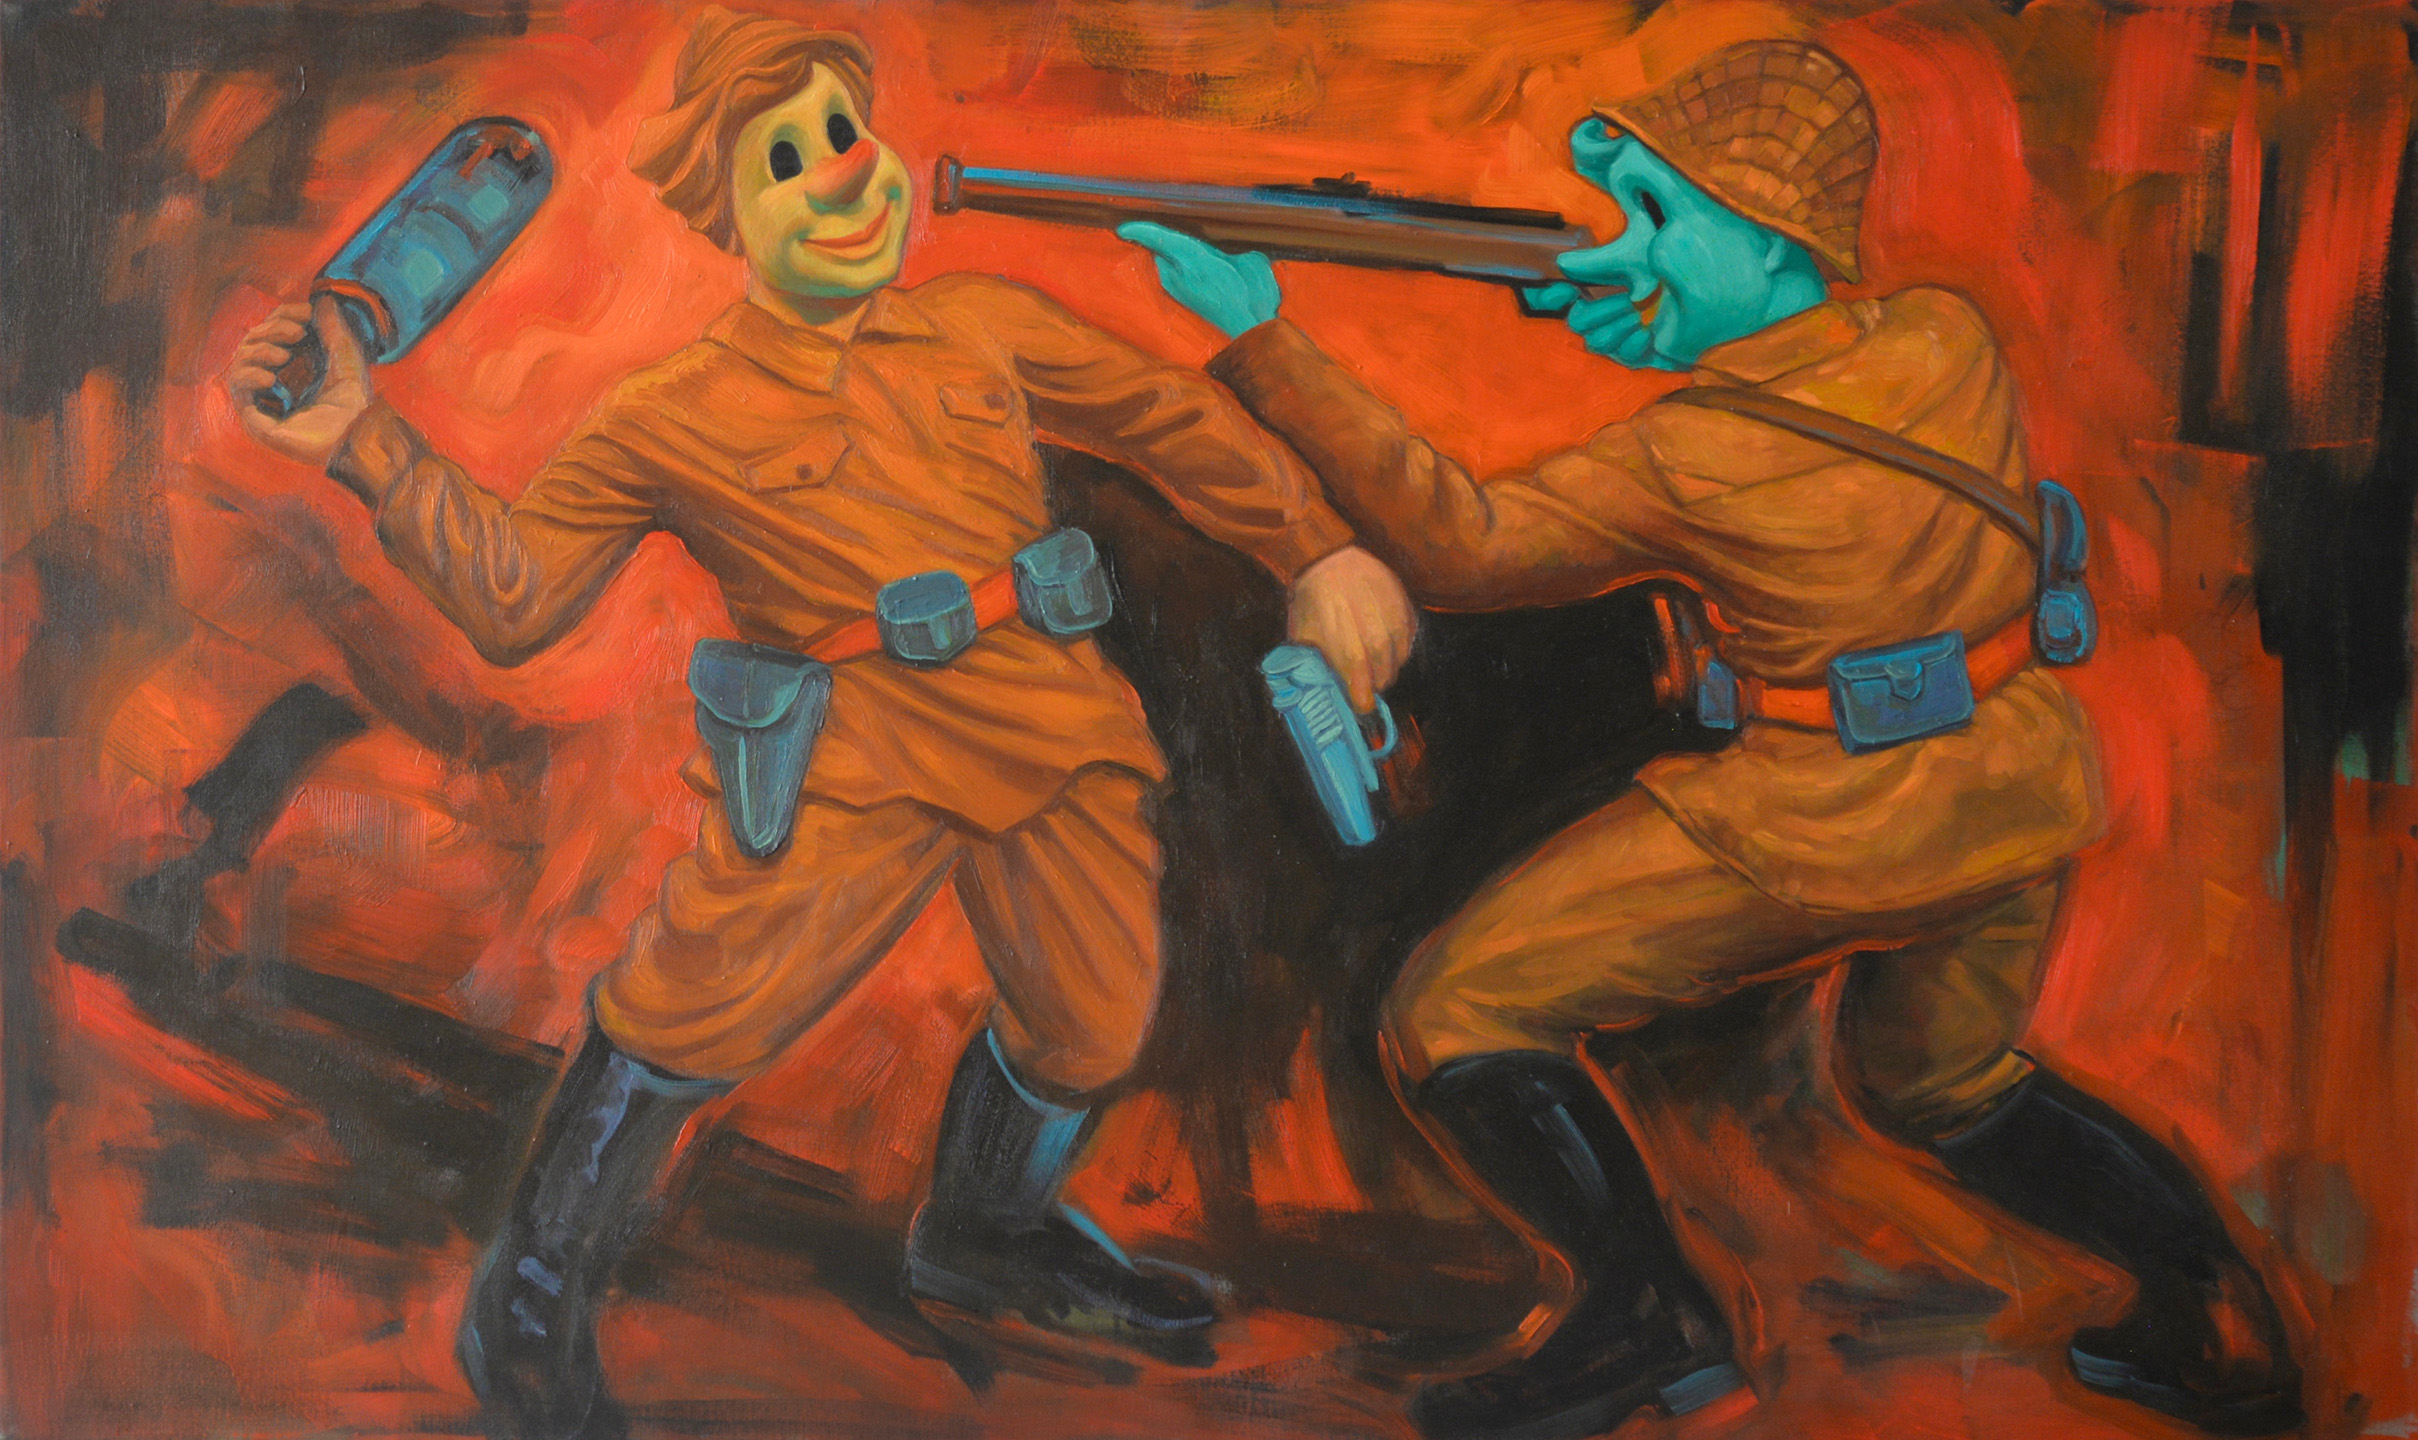 "Vicki Khuzami Wrath, Pinocchio and the Seven Deadly Sins Oil on canvas 36"" x 60"", 2015"